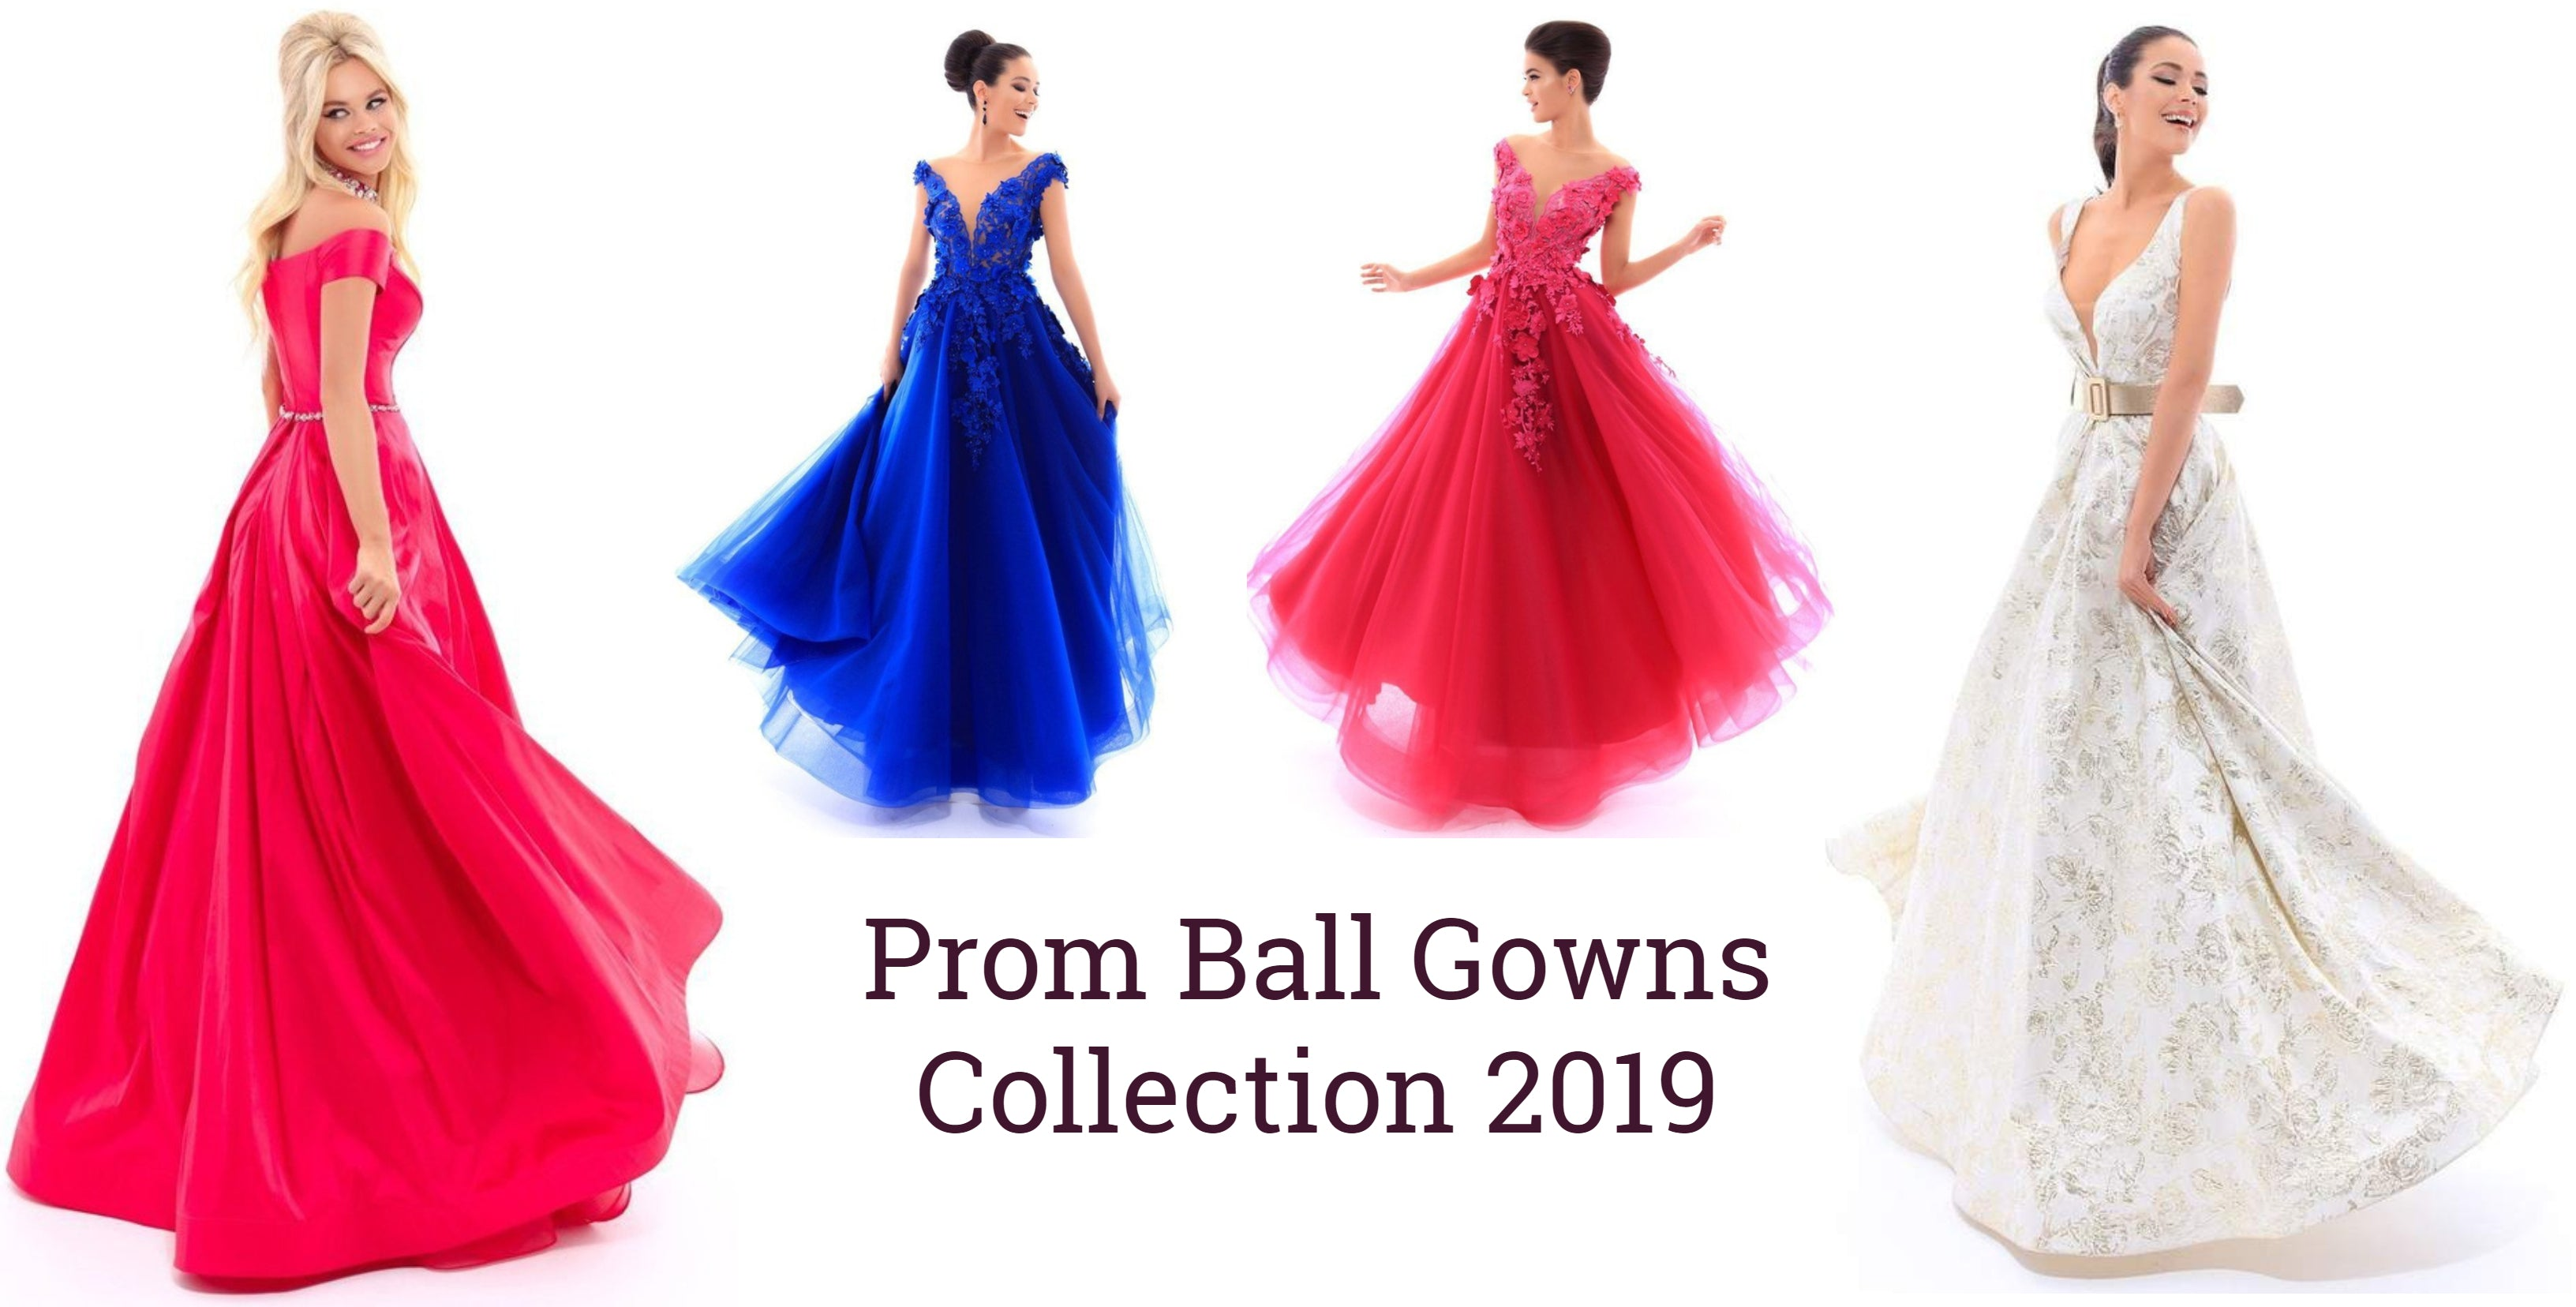 Exotic Prom Ball Gown Dresses Suggestions That Must Be in Your Wardrobe